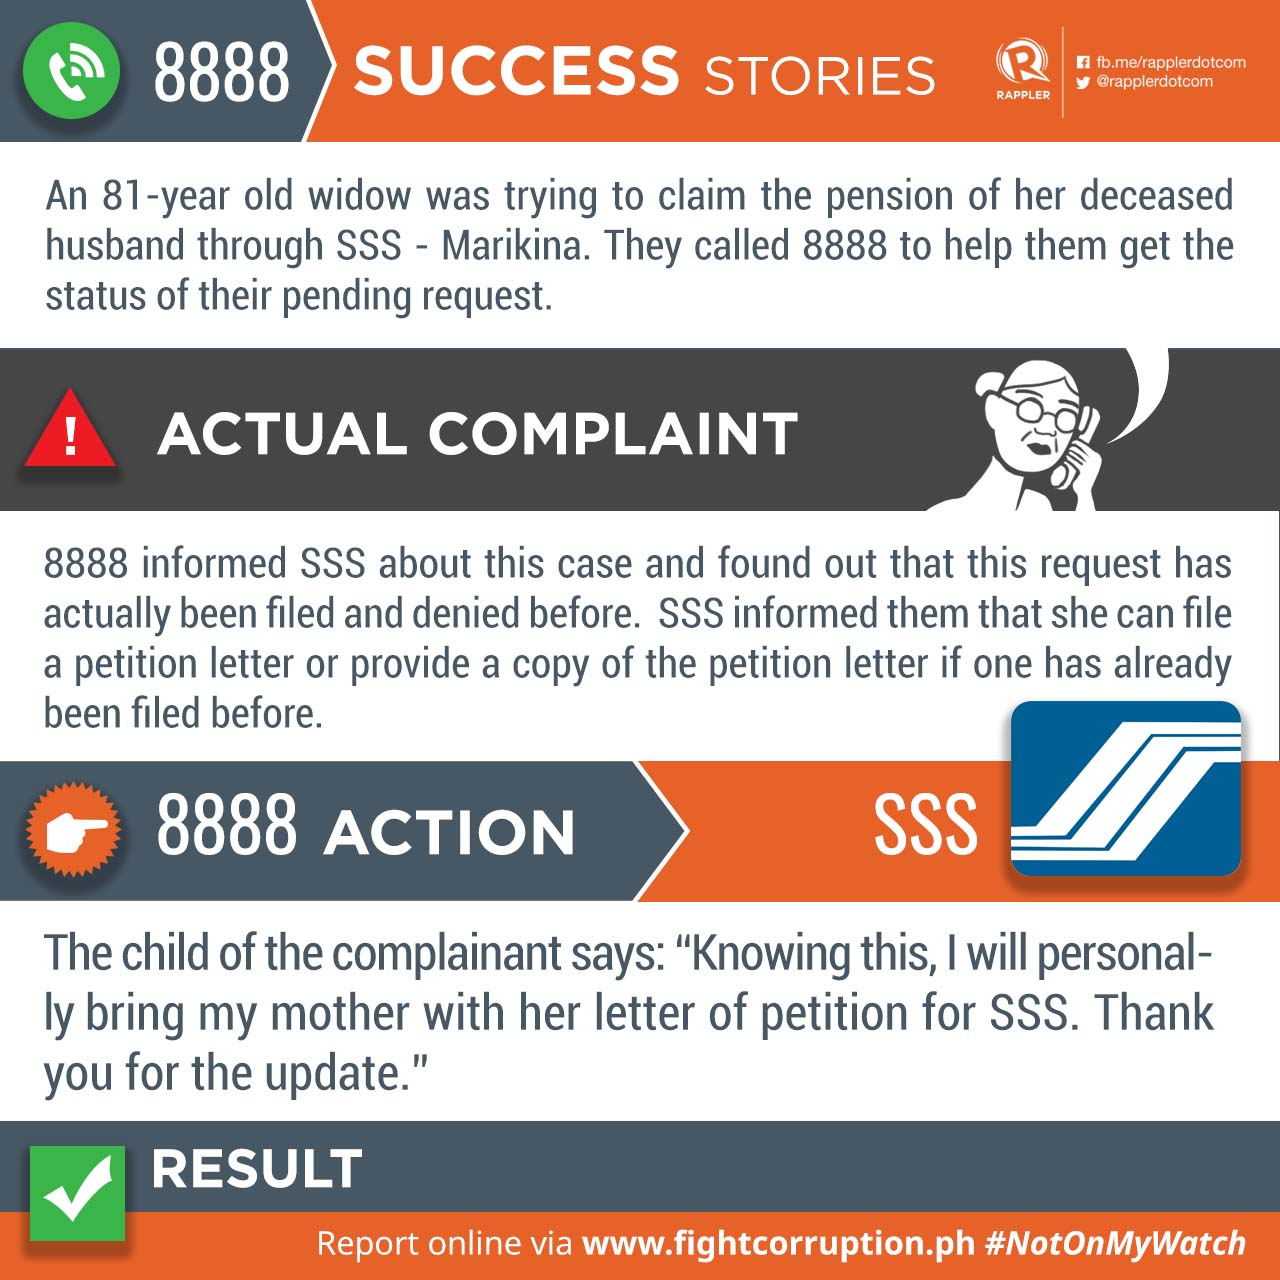 Success stories from the 8888 hotline